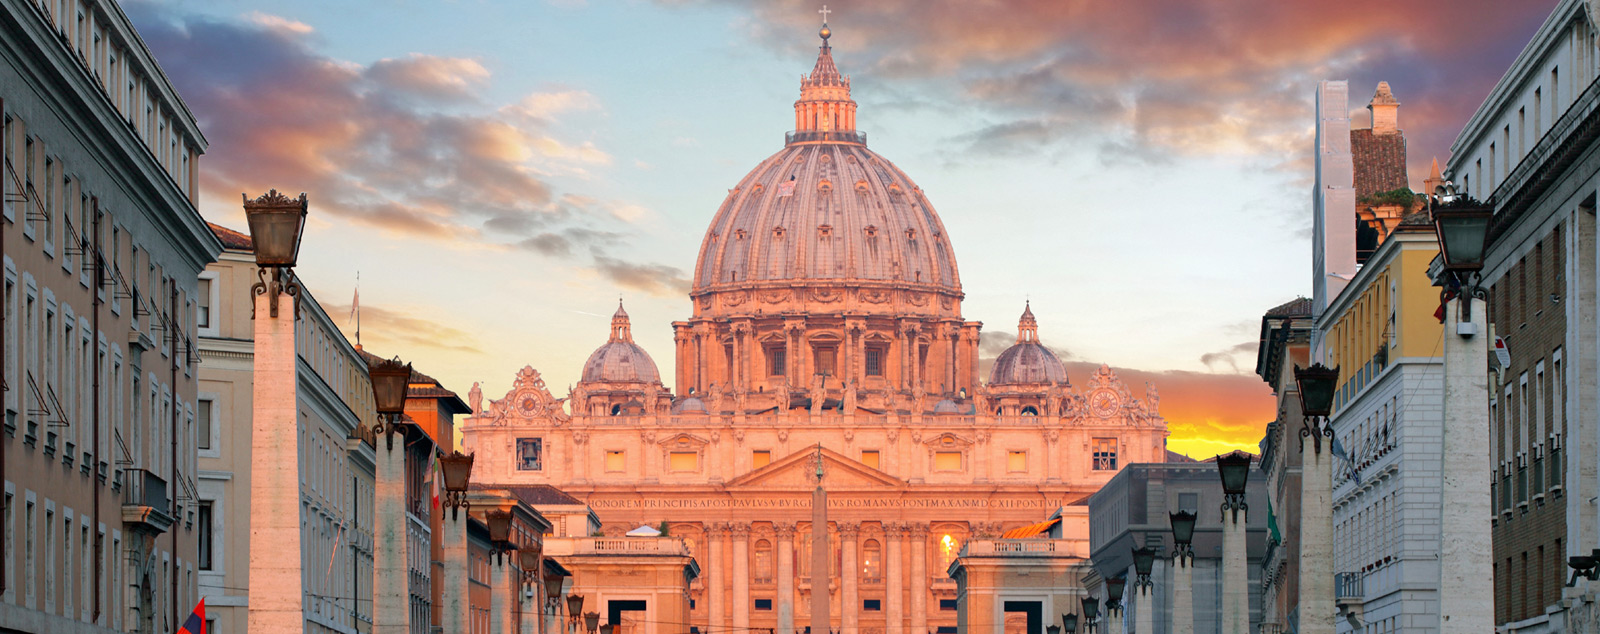 View of St Peter's Basilica in the Vatican